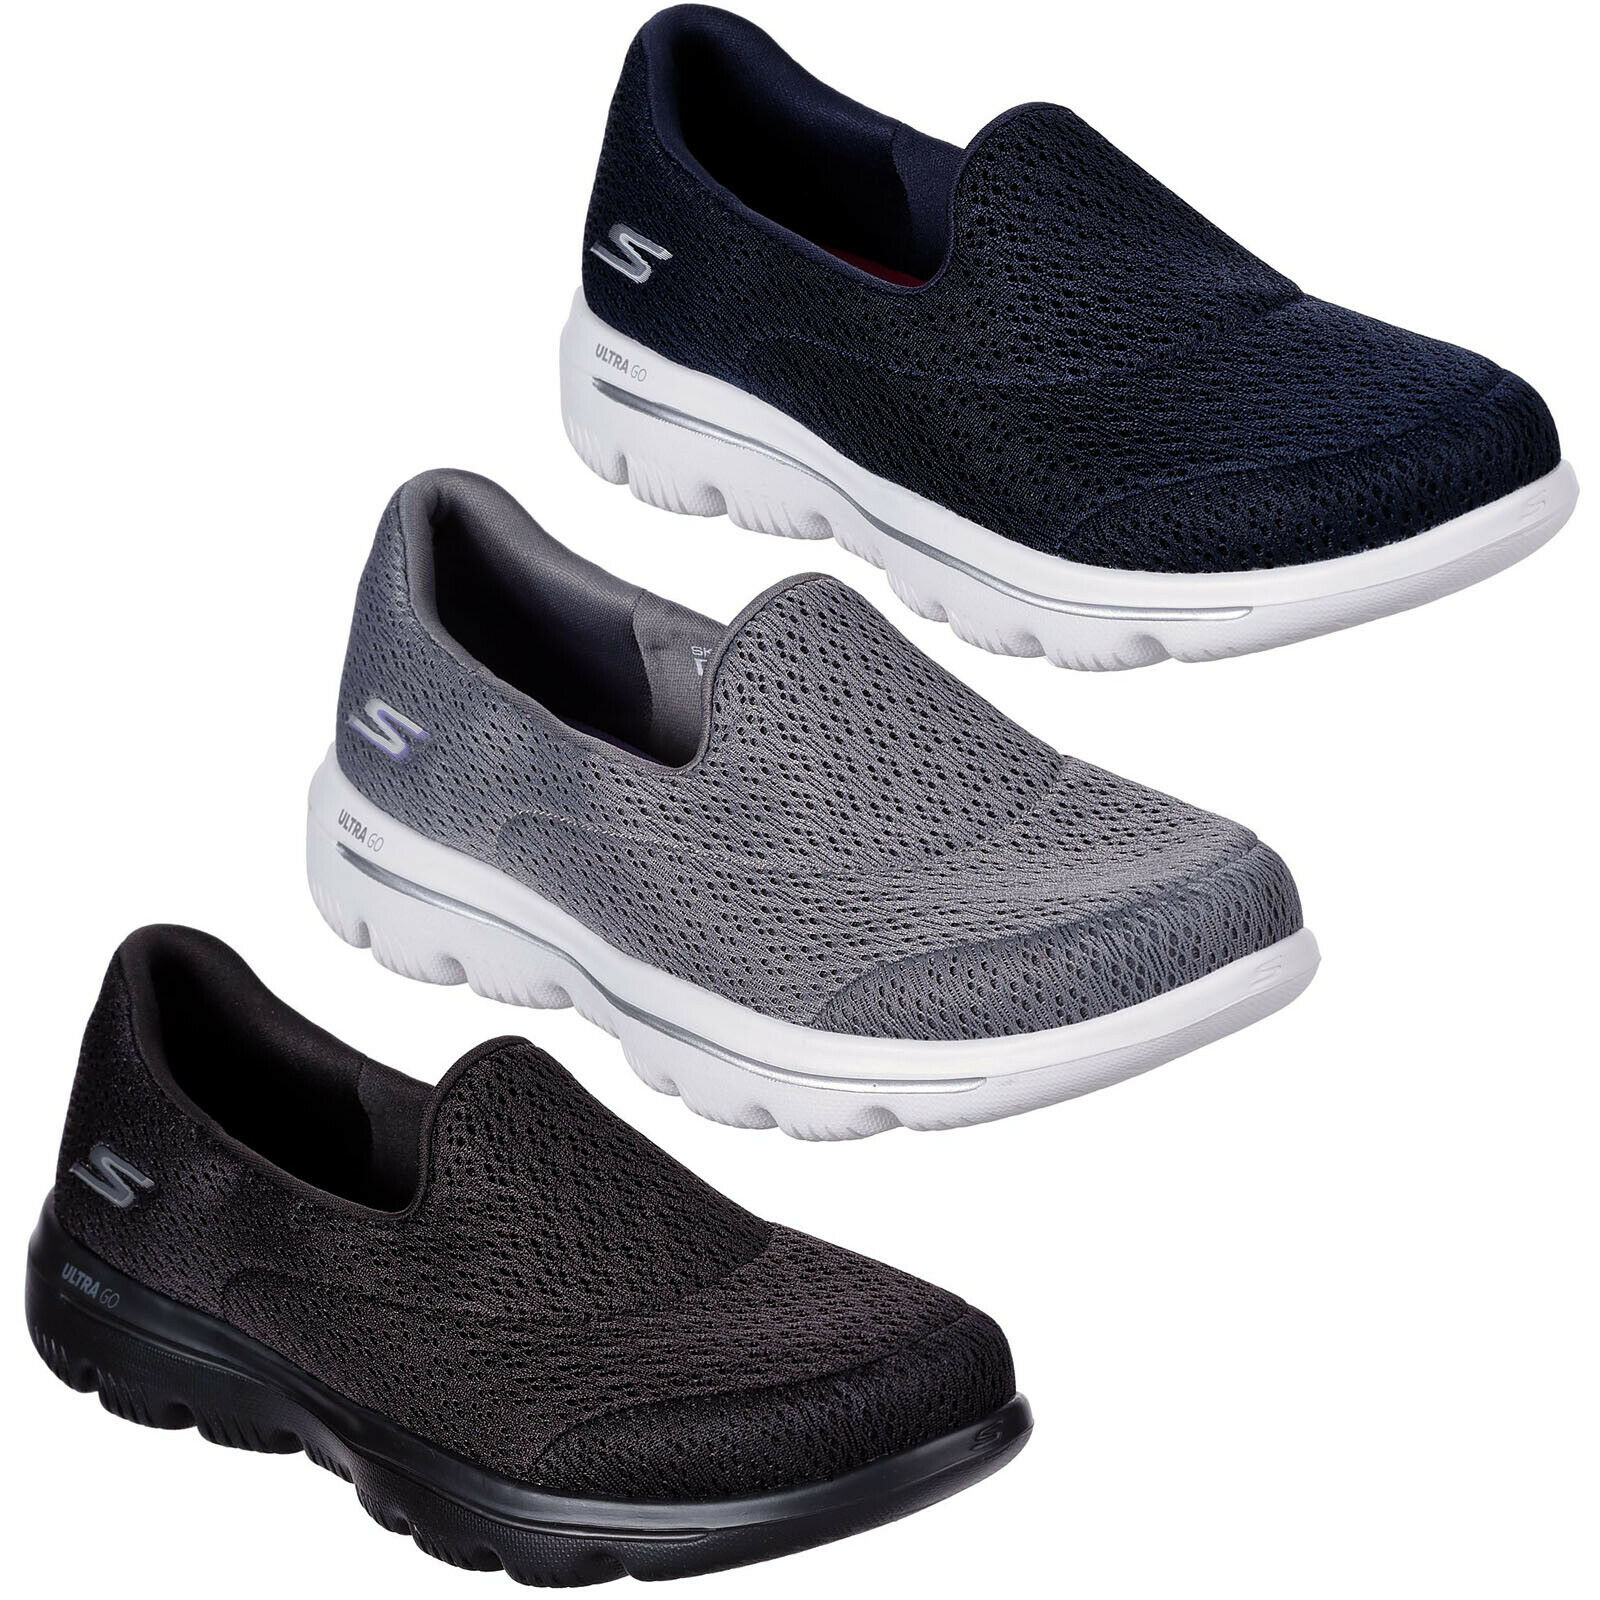 Skechers GoWalk Evolution Ultra - Persist Trainers Lightweight shoes Womens 15738